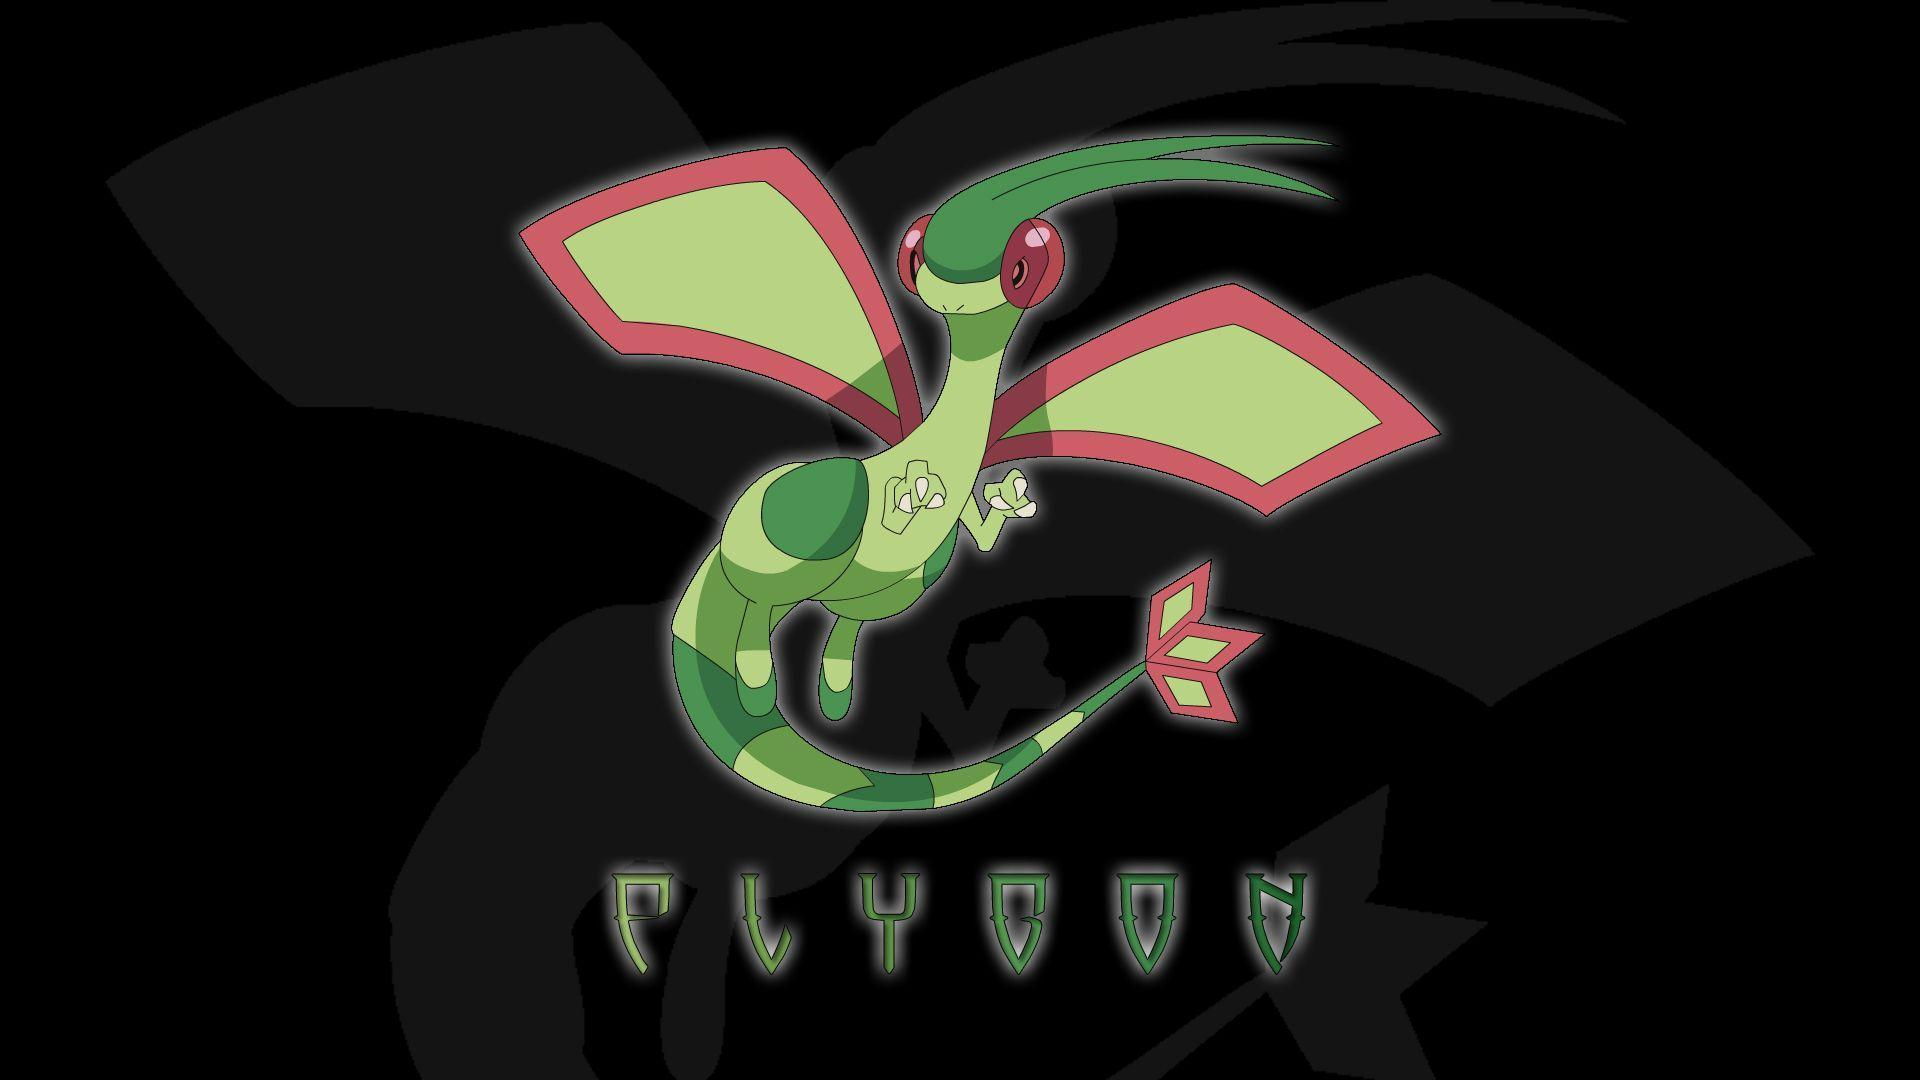 flygon copy manga anime #9SfD